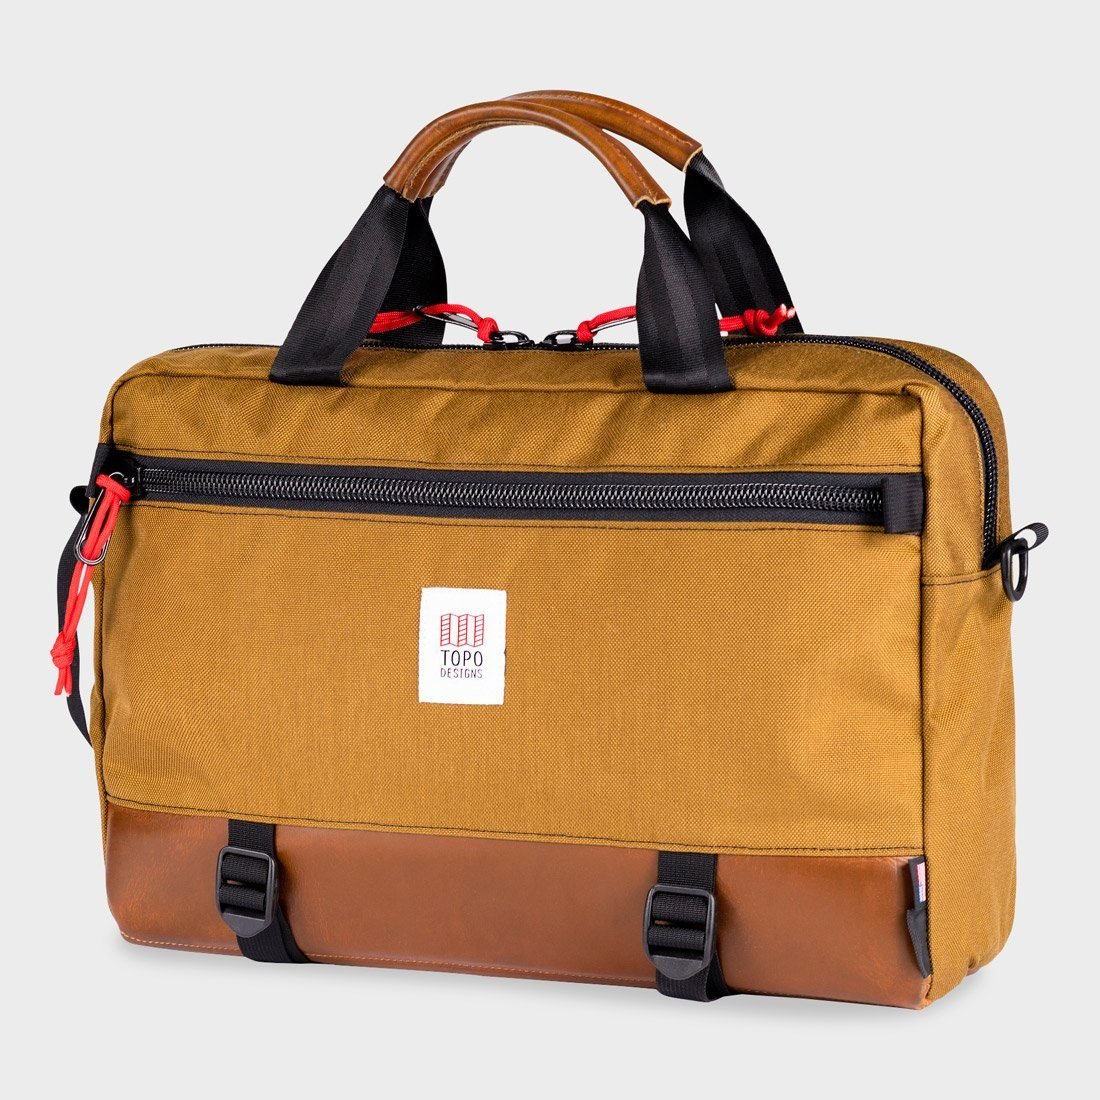 Topo Designs Commuter Briefcase Duck Brown/Brown Leather